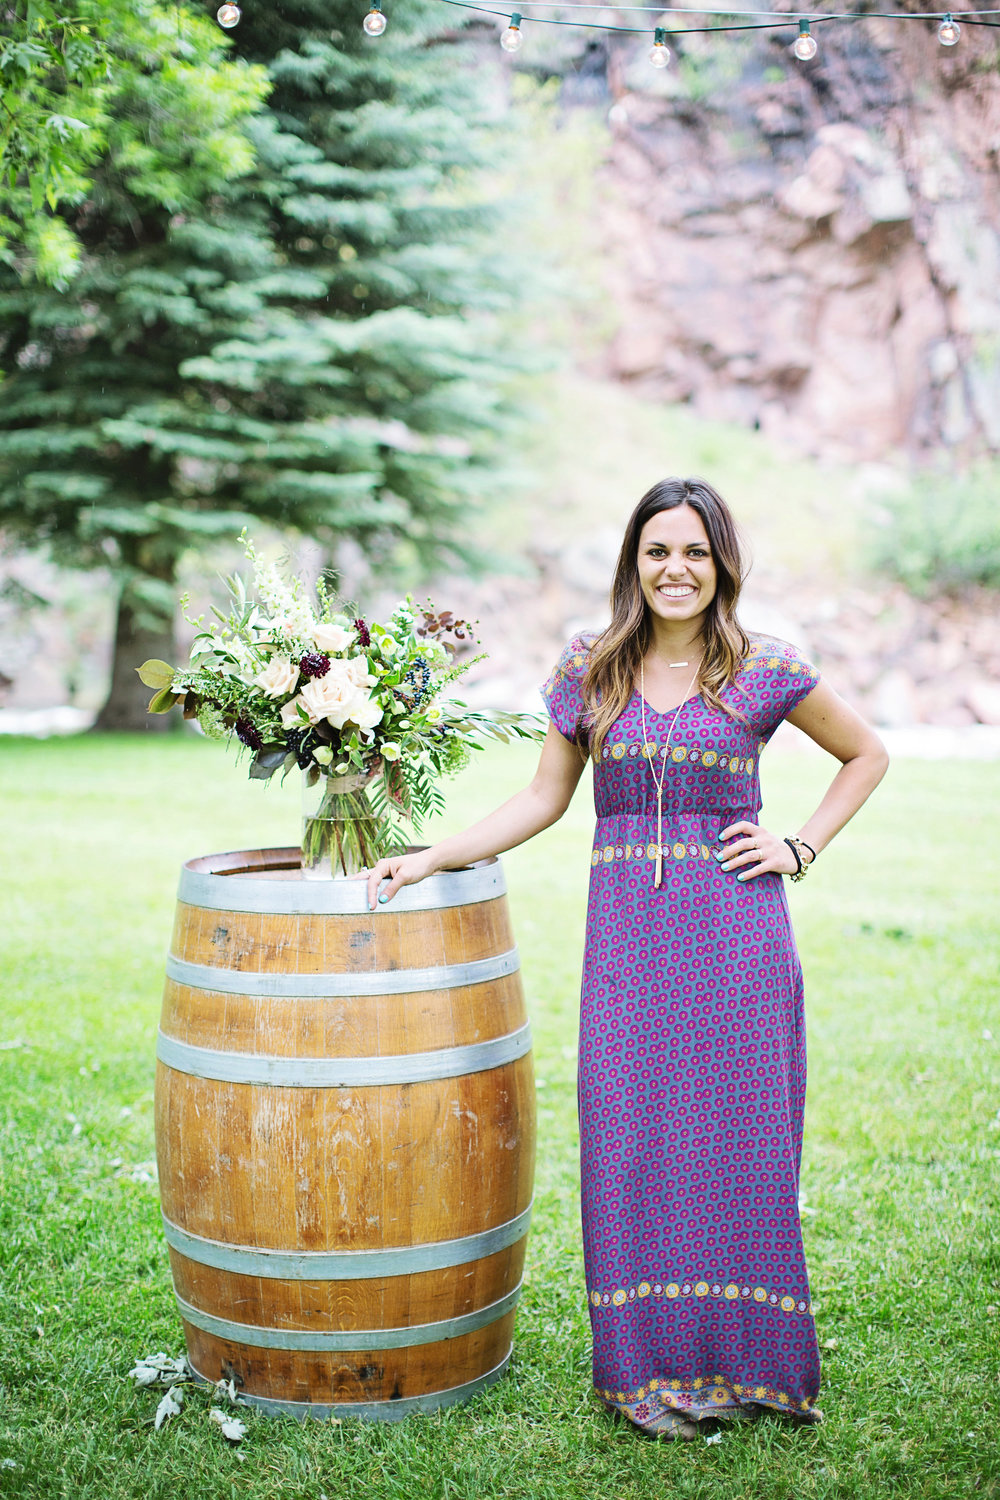 "darcy hummel- lead wedding + event planner   Darcy Hummel is a Colorado native who loves to travel and see new things. She has been to Iceland, traveled throughout Europe and even lived in Belize for awhile. Her ultimate passion is helping others. She loves working at Children's Homes and giving to people in need. If she's not running around Fort Collins with her two puppies, she's at home ""Pinteresting"" new design ideas for weddings and styled shoots. She loves DIY projects and practicing her calligraphy. Darcy loves to laugh and keep things light but is a seasoned pro!   Darcy has been in the wedding industry for 4 years and loves every minute of it. From the initial consultation, to the wedding day, she enjoys the process. The father-daughter dance always brings her to tears and she loves getting to know the couples on a personal level. She loves that weddings are always unique, each one has a totally different look, feel & energy than the last. She is excited to meet you and help you bring your wedding day to life."